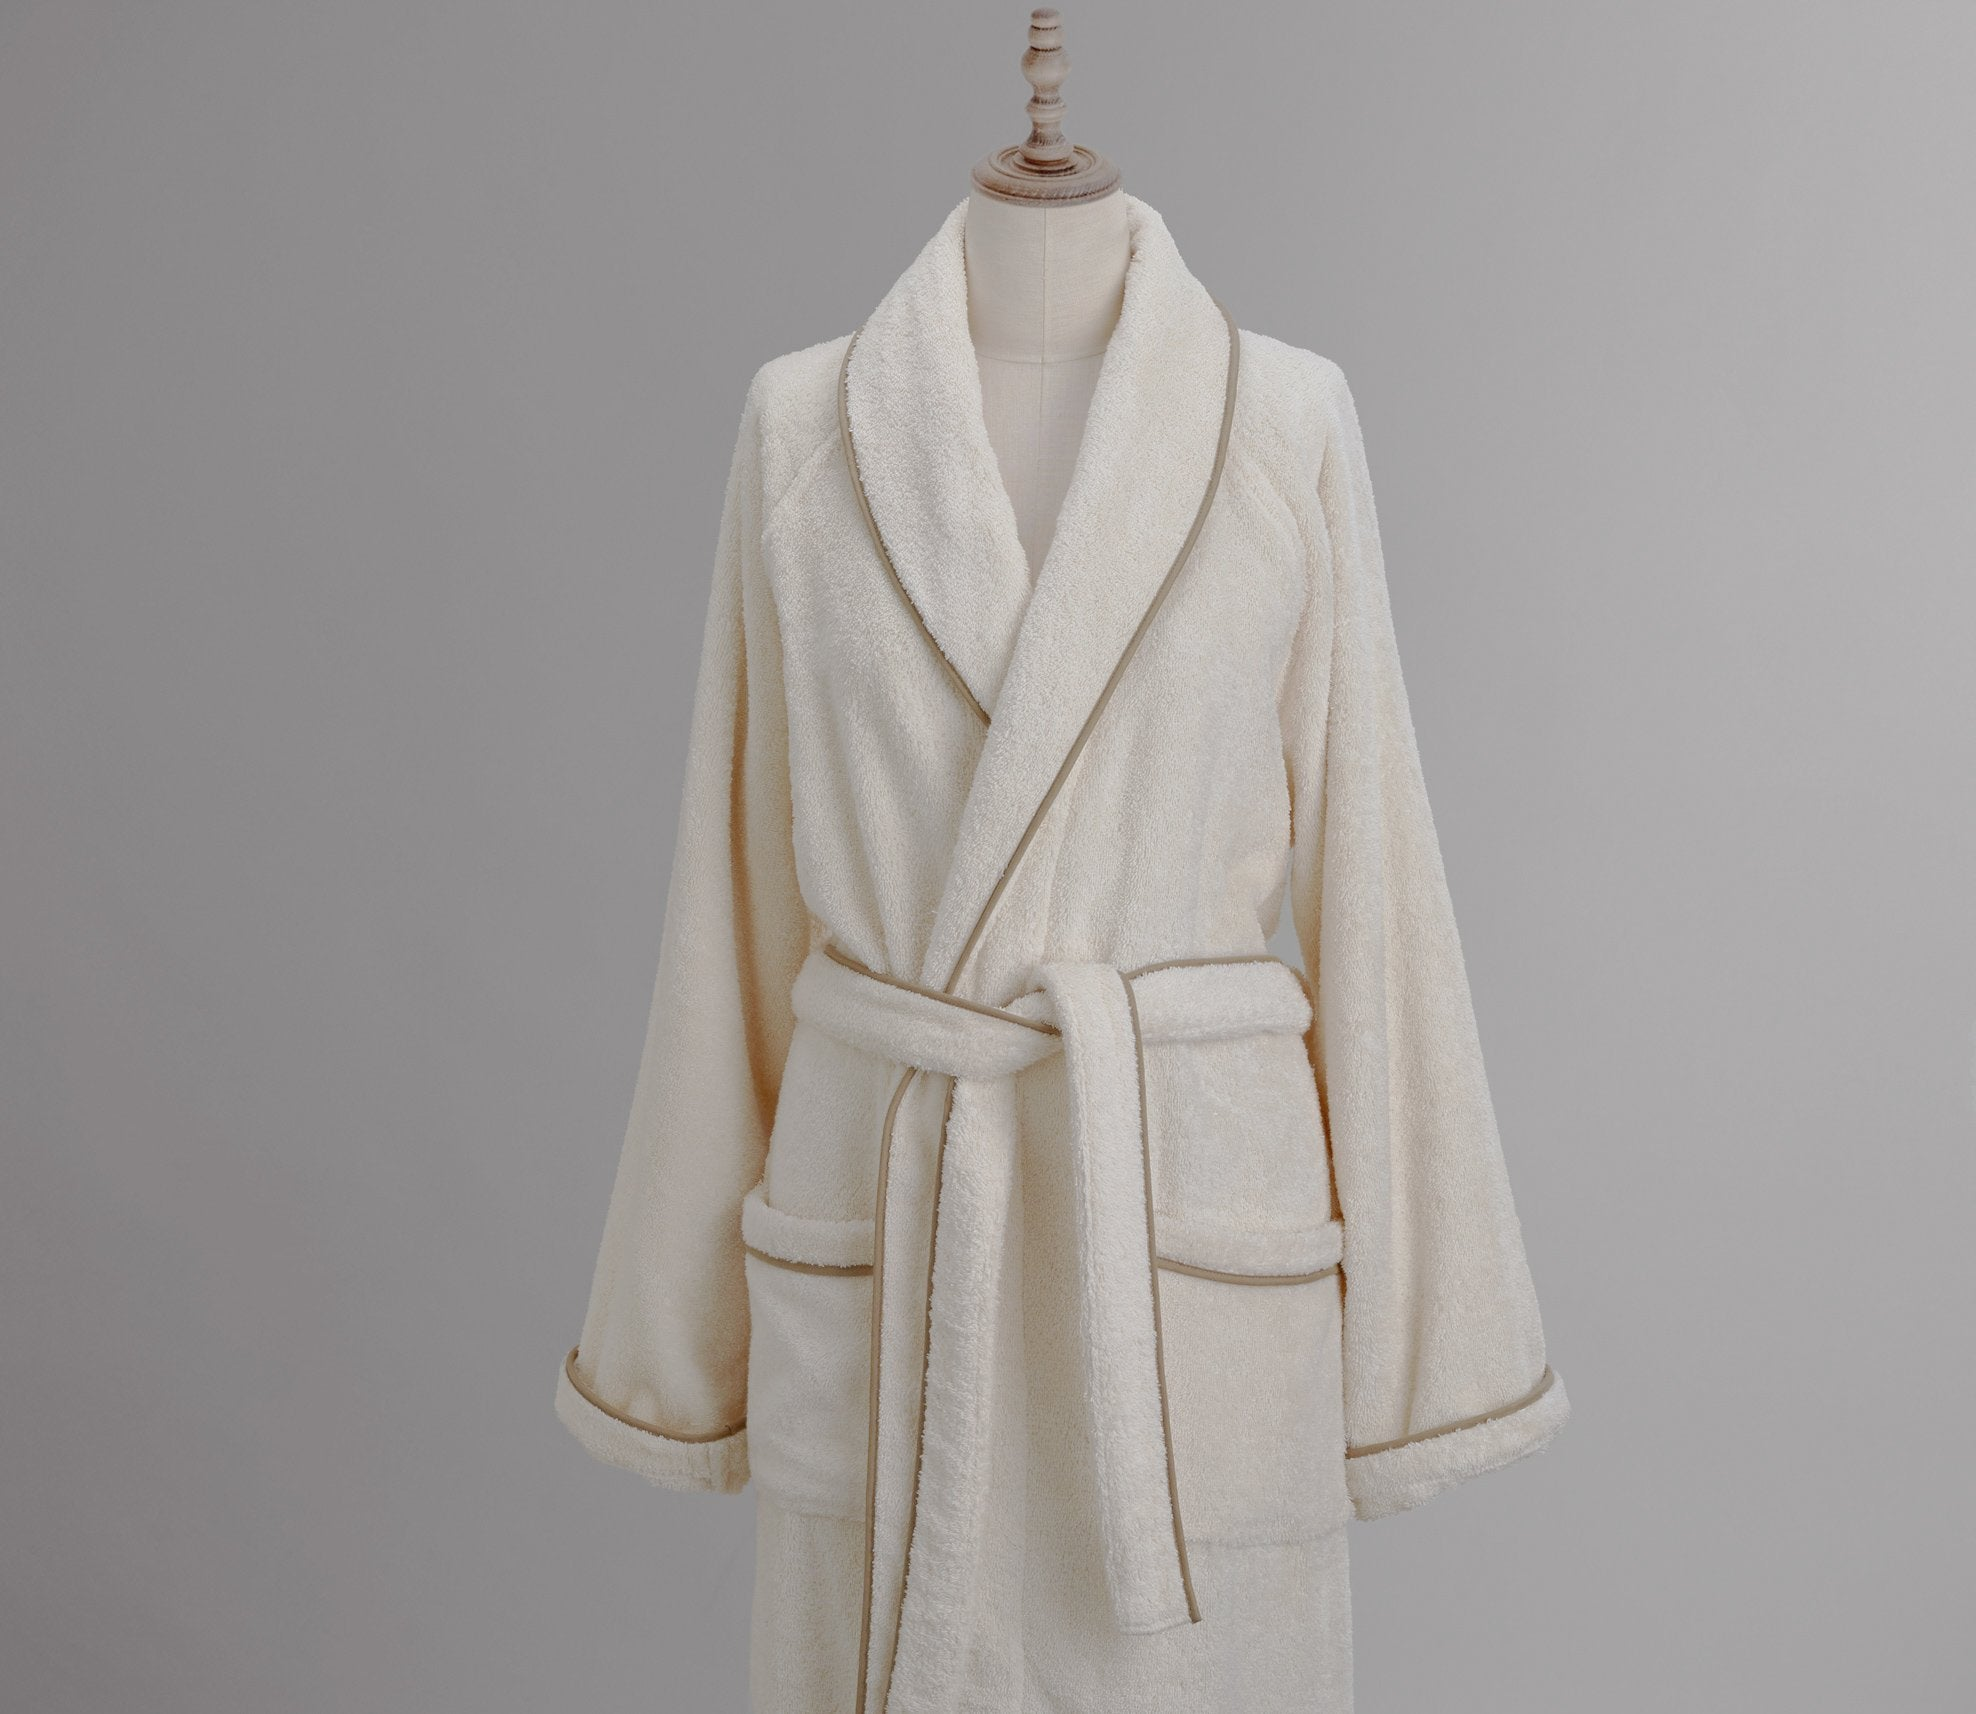 Cairo Robe Ivory Custom Large Product Image 1